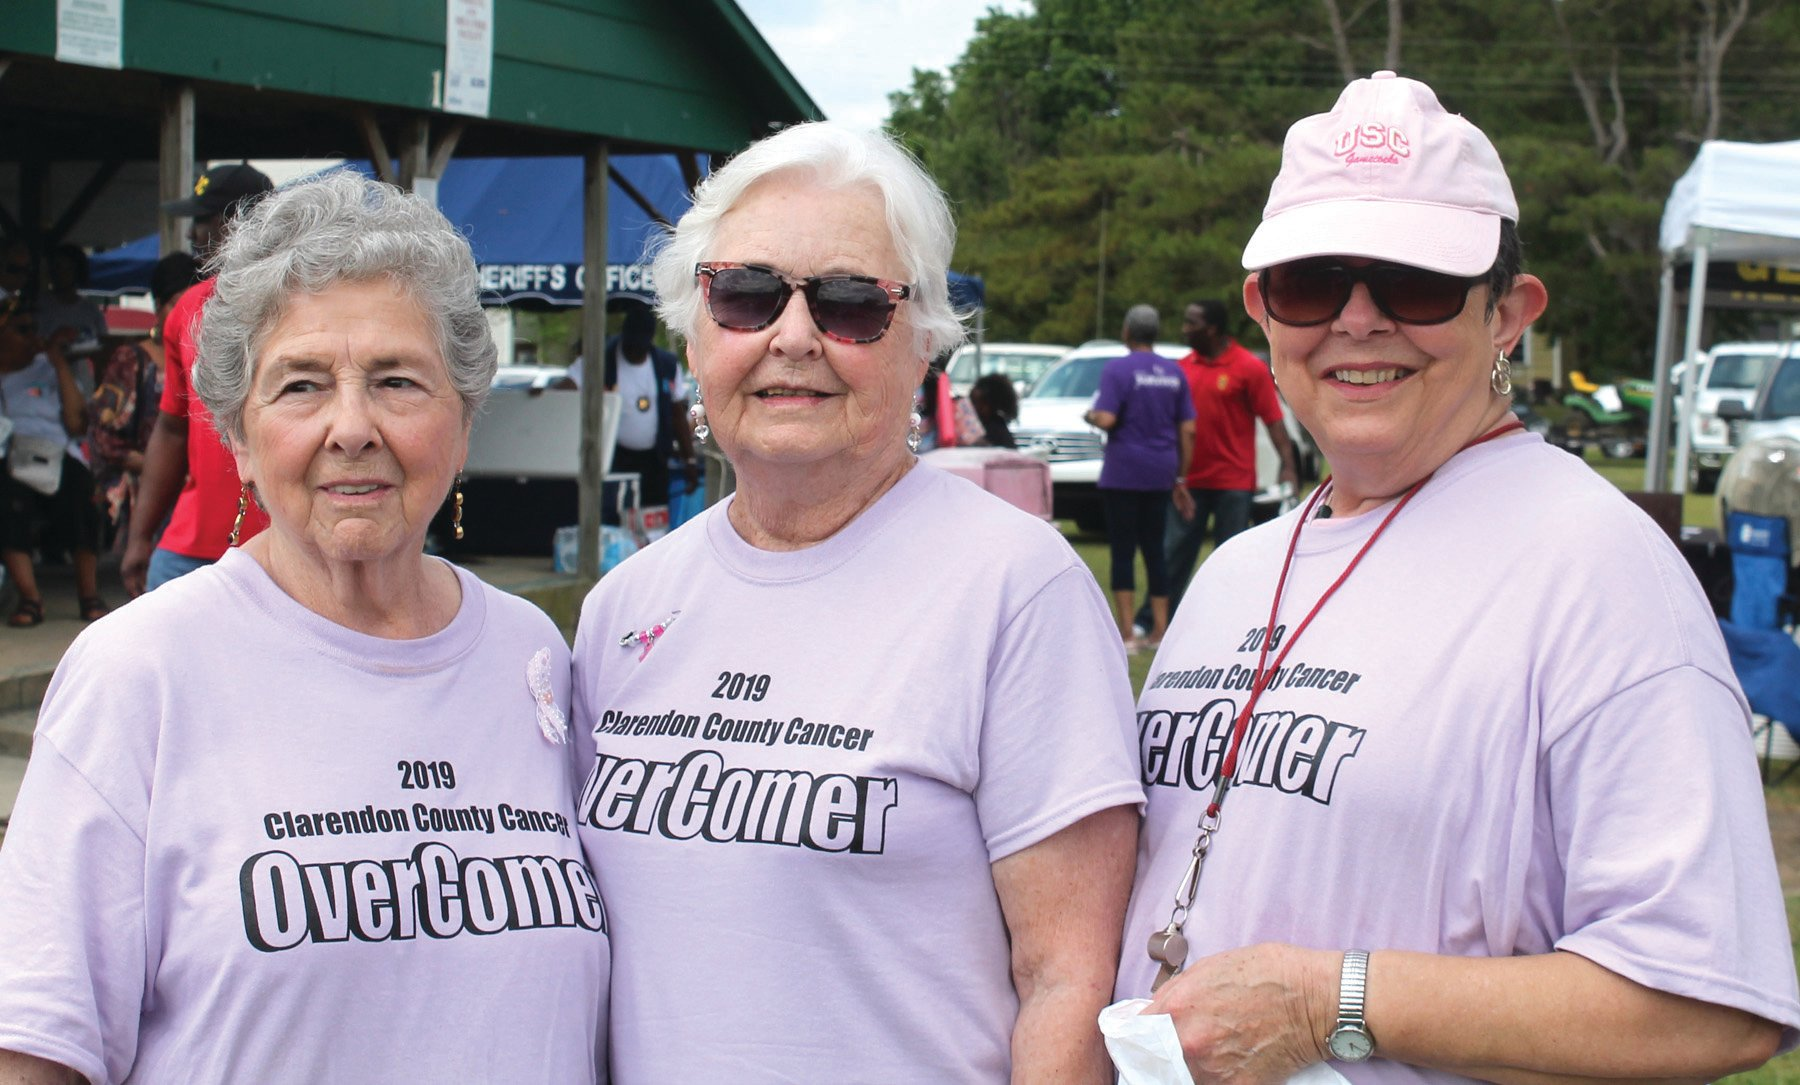 SUMTER ITEM FILE PHOTO Overcomers Sharon Cramer, Annette Browder and Judy Gamble Hooks are shown wearing their FREE overcomer shirts at the 2019 Clarendon County Cancer OverComers' Walk.  OverComers' T-shirts will be free again this year.  To register, call Sgt. Annett Smith with the Clarendon County Sheriff's Office at (803) 460-3976.